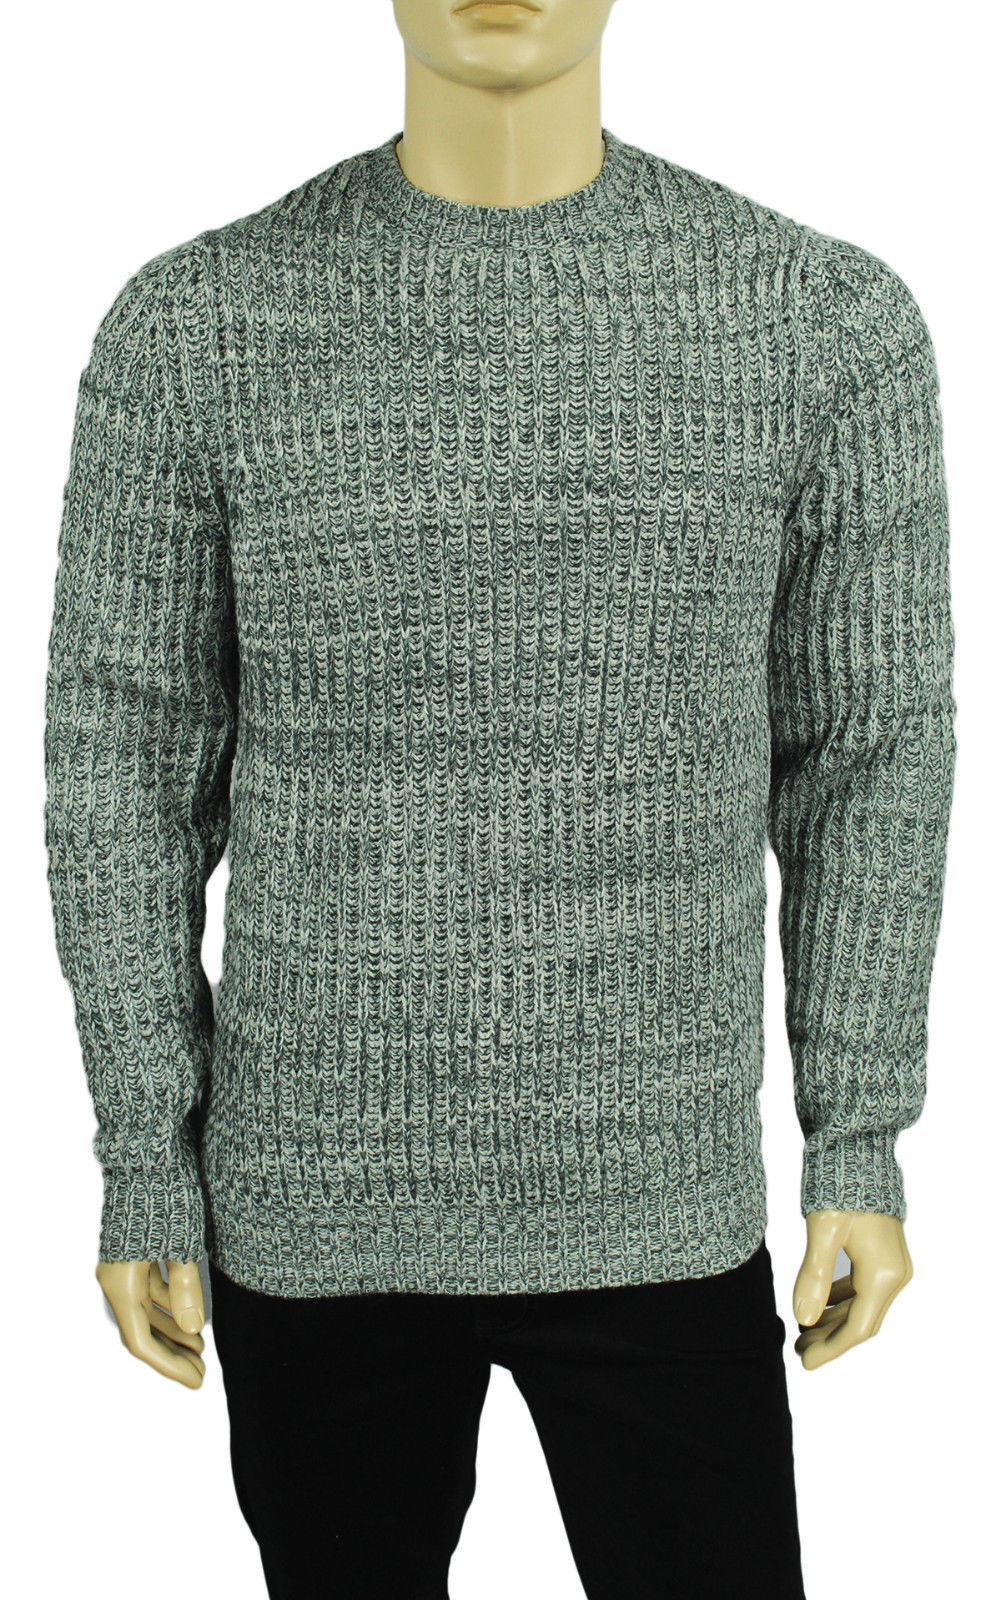 Primary image for NEW CLUB ROOM CREW NECK GREY ACRYLIC BLEND PULLOVER SWEATER $85